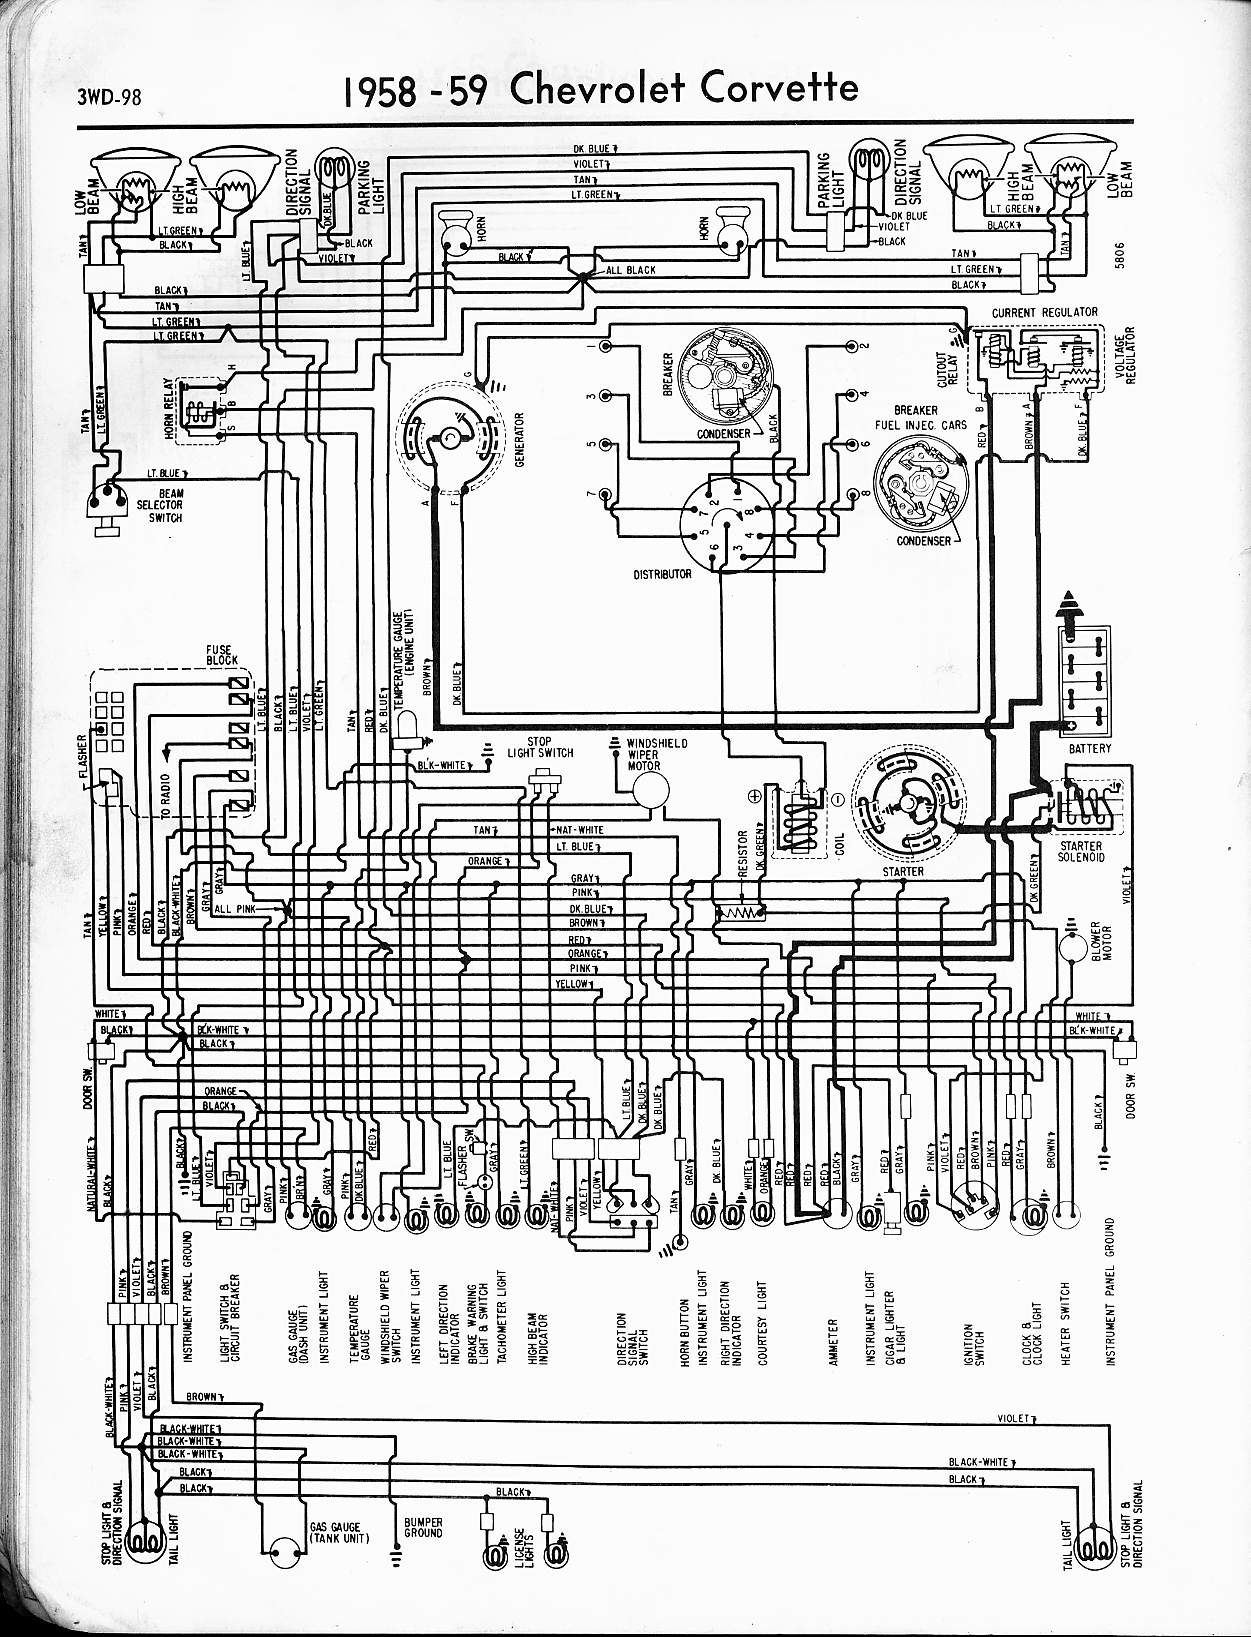 chevy v8 wiring diagram wiring diagramchevy v8 wiring diagram wiring diagram